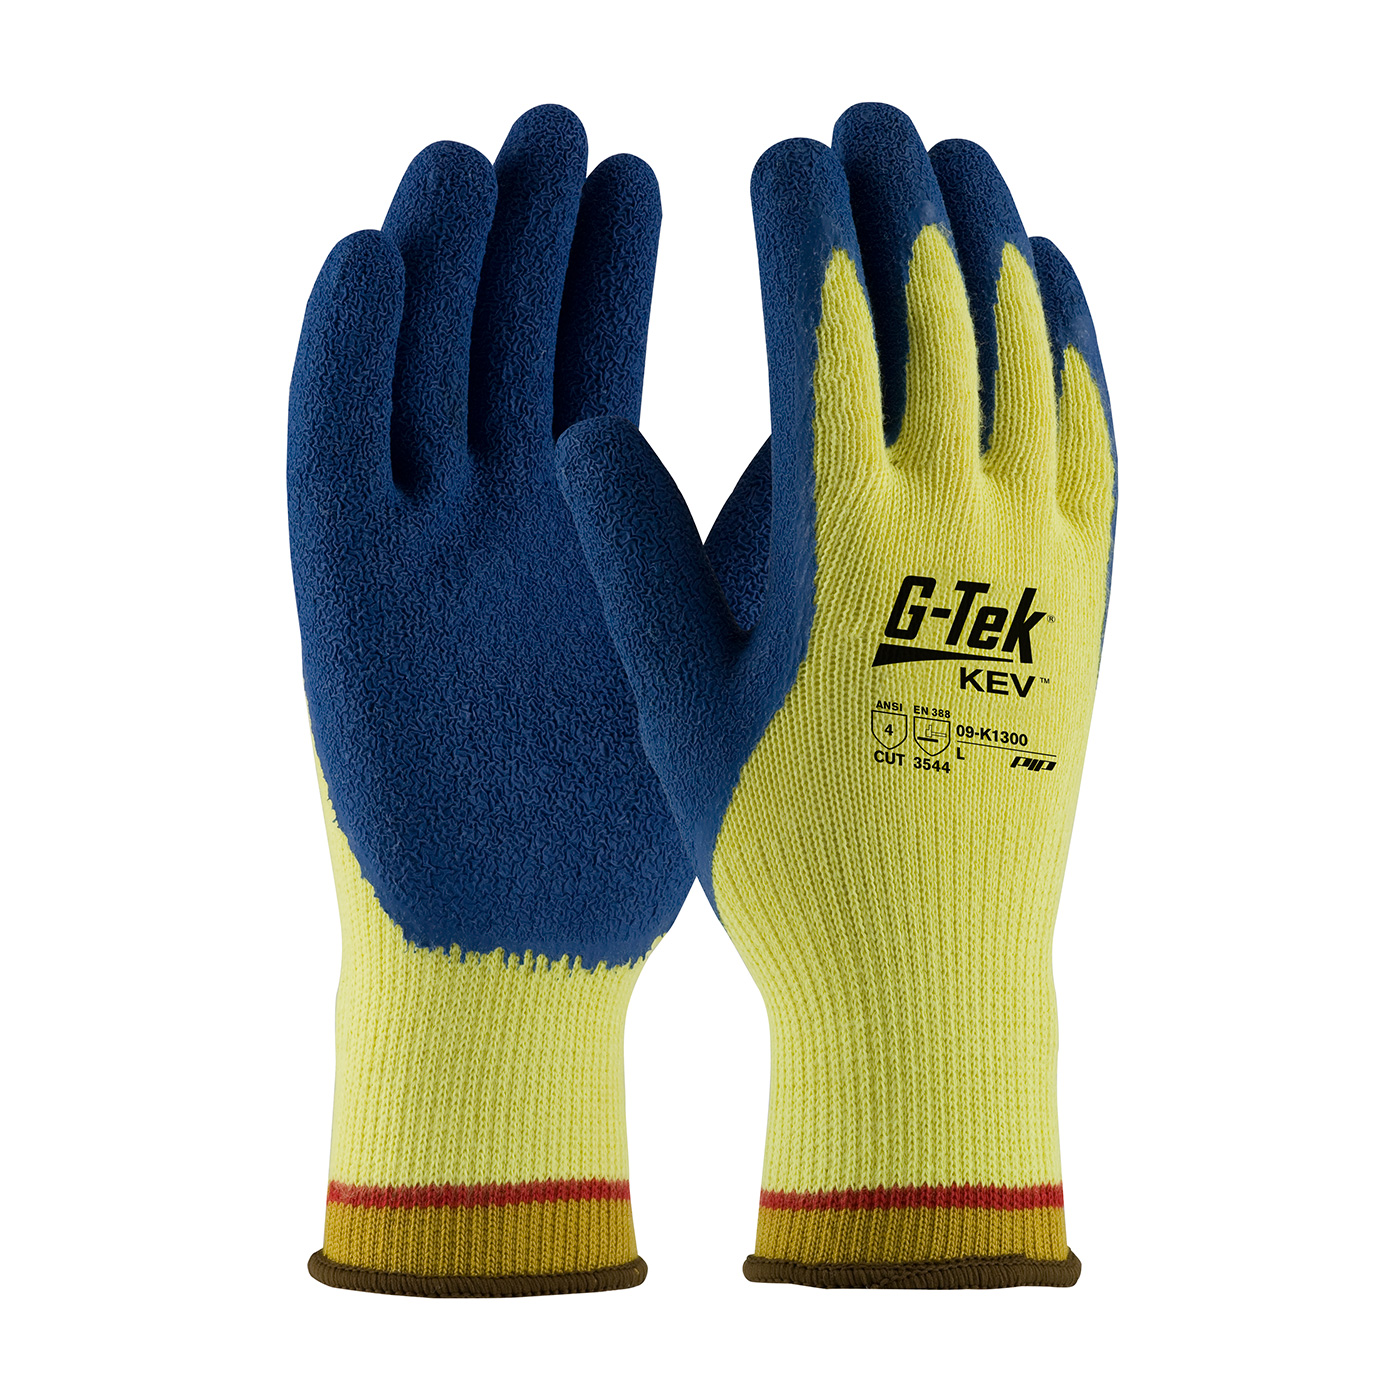 #09-K1300 PIP G-Tek® KEV Latex Coated Cut-Resistant Protective Work Gloves. Cut level 4.